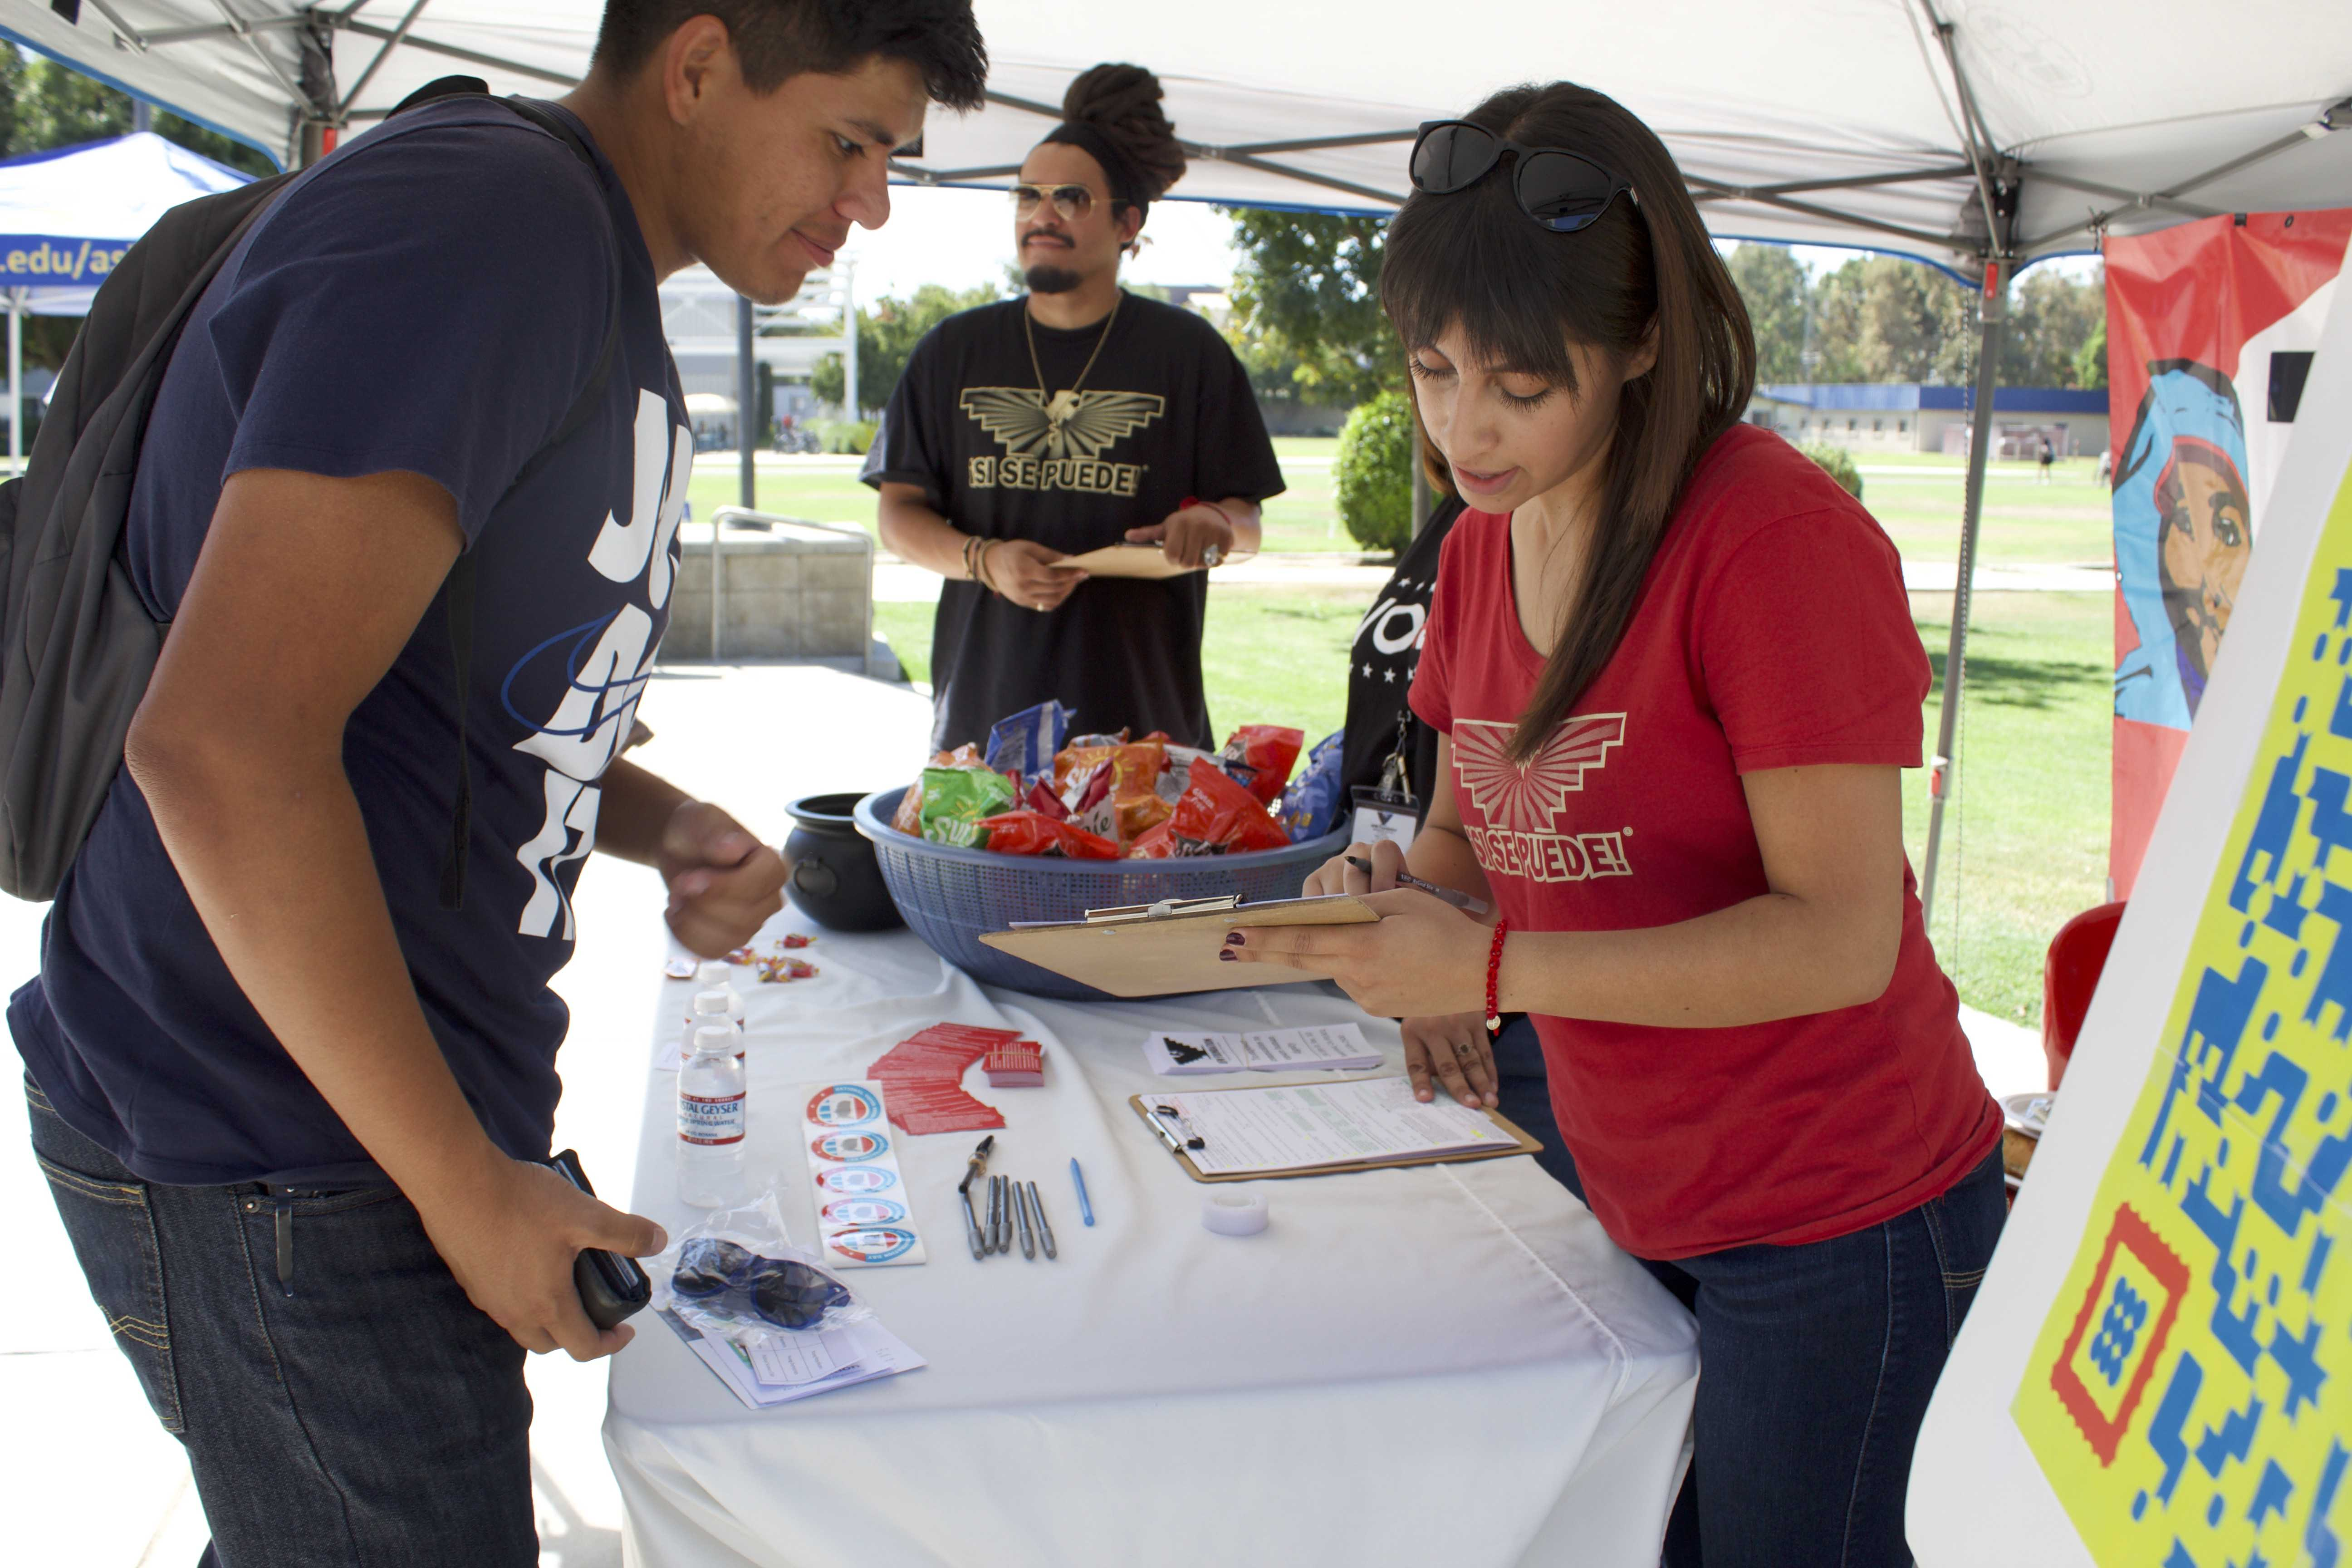 Voter registration drive attracts new student voters